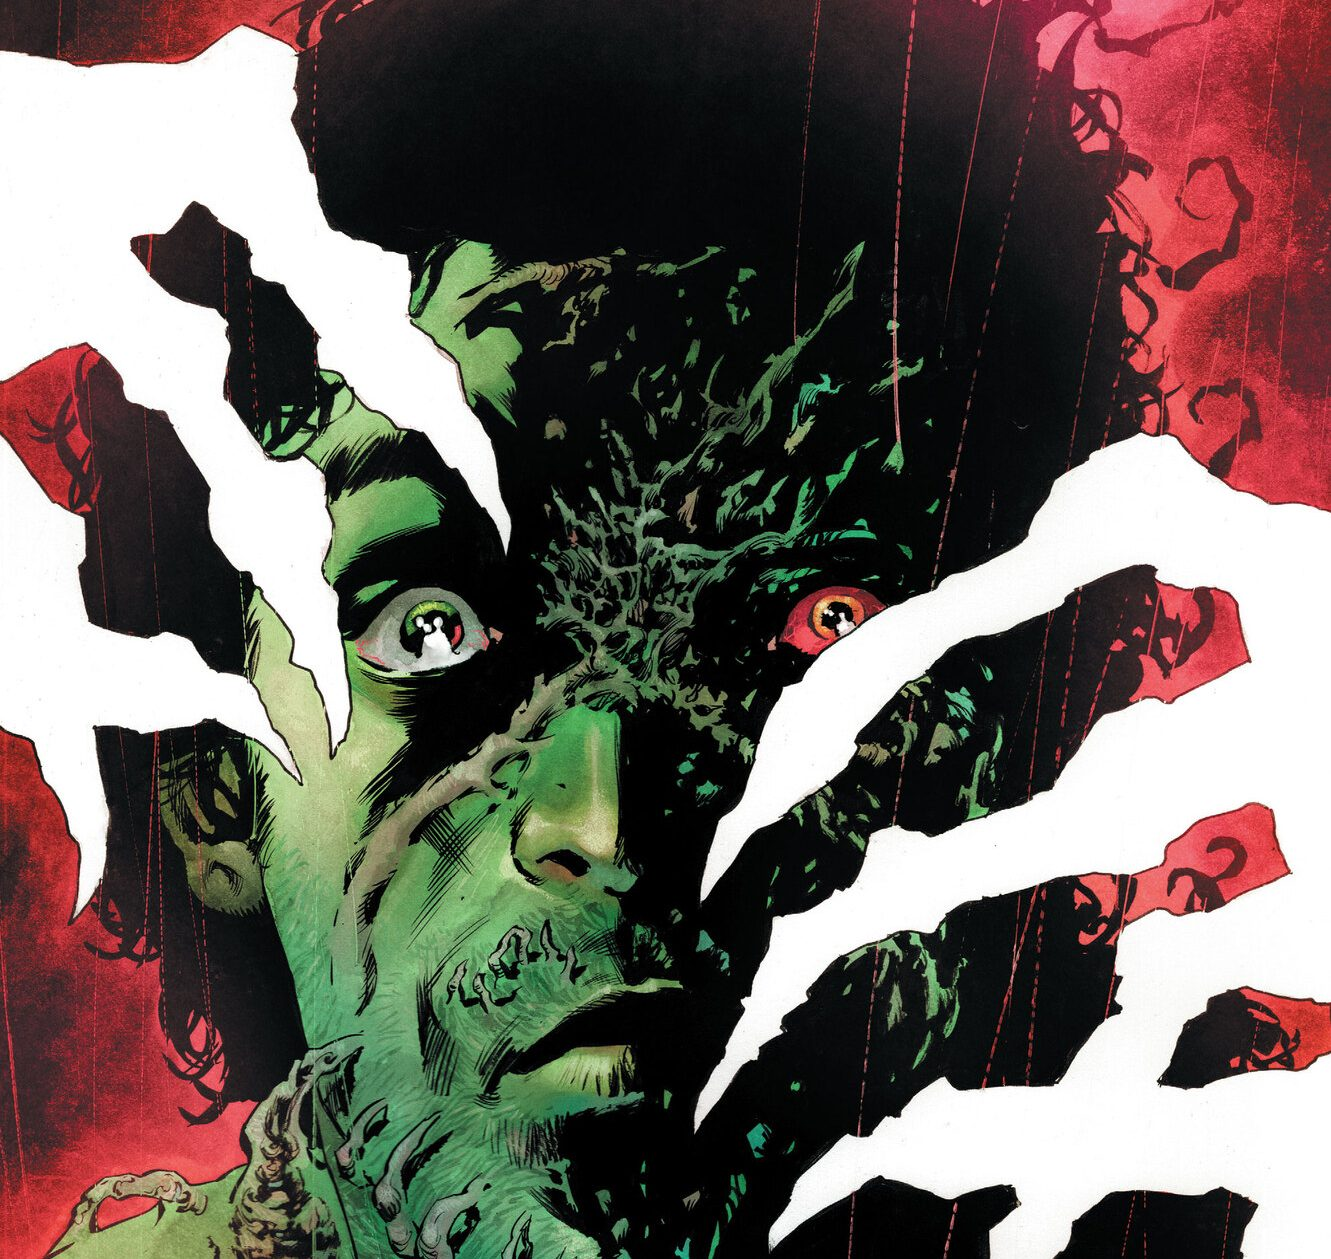 'The Swamp Thing' #2 review: A war of ideas